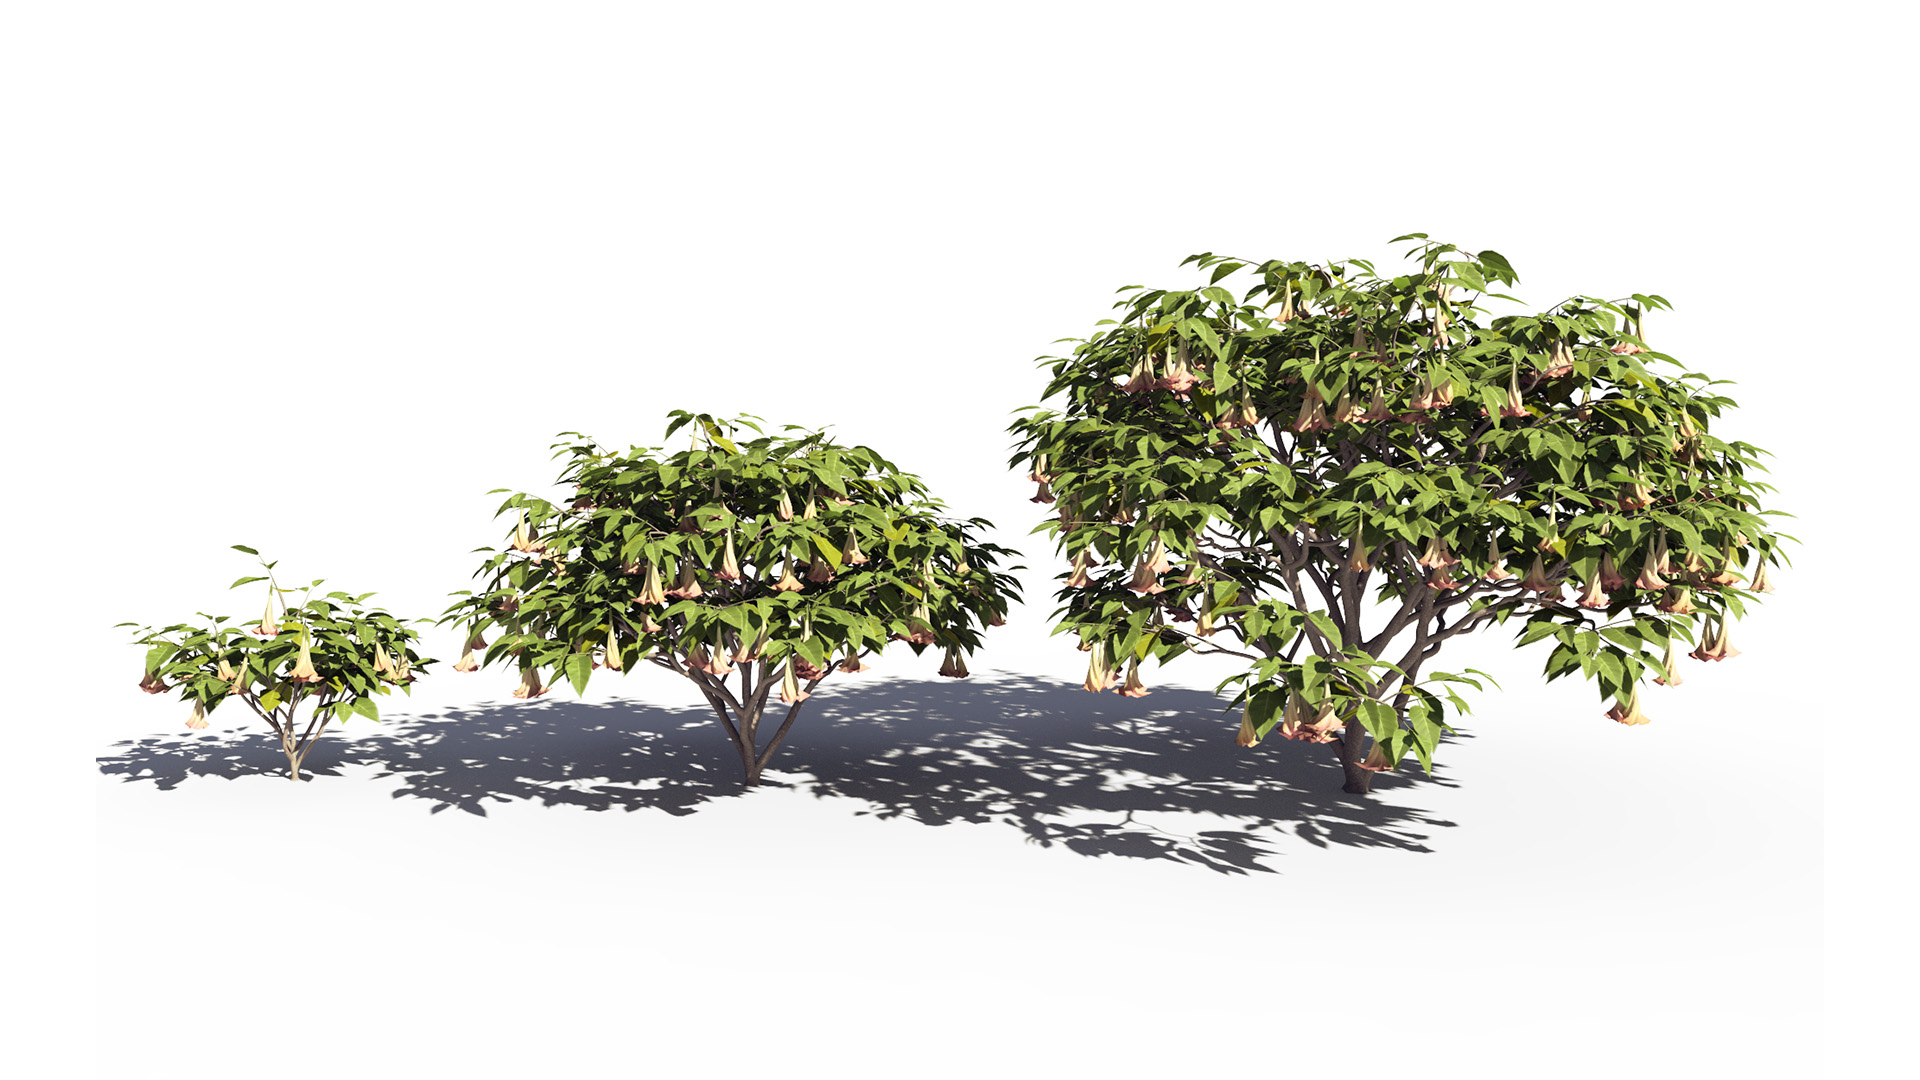 3D model of the Magnificent angels trumpet Brugmansia x insignis maturity variations